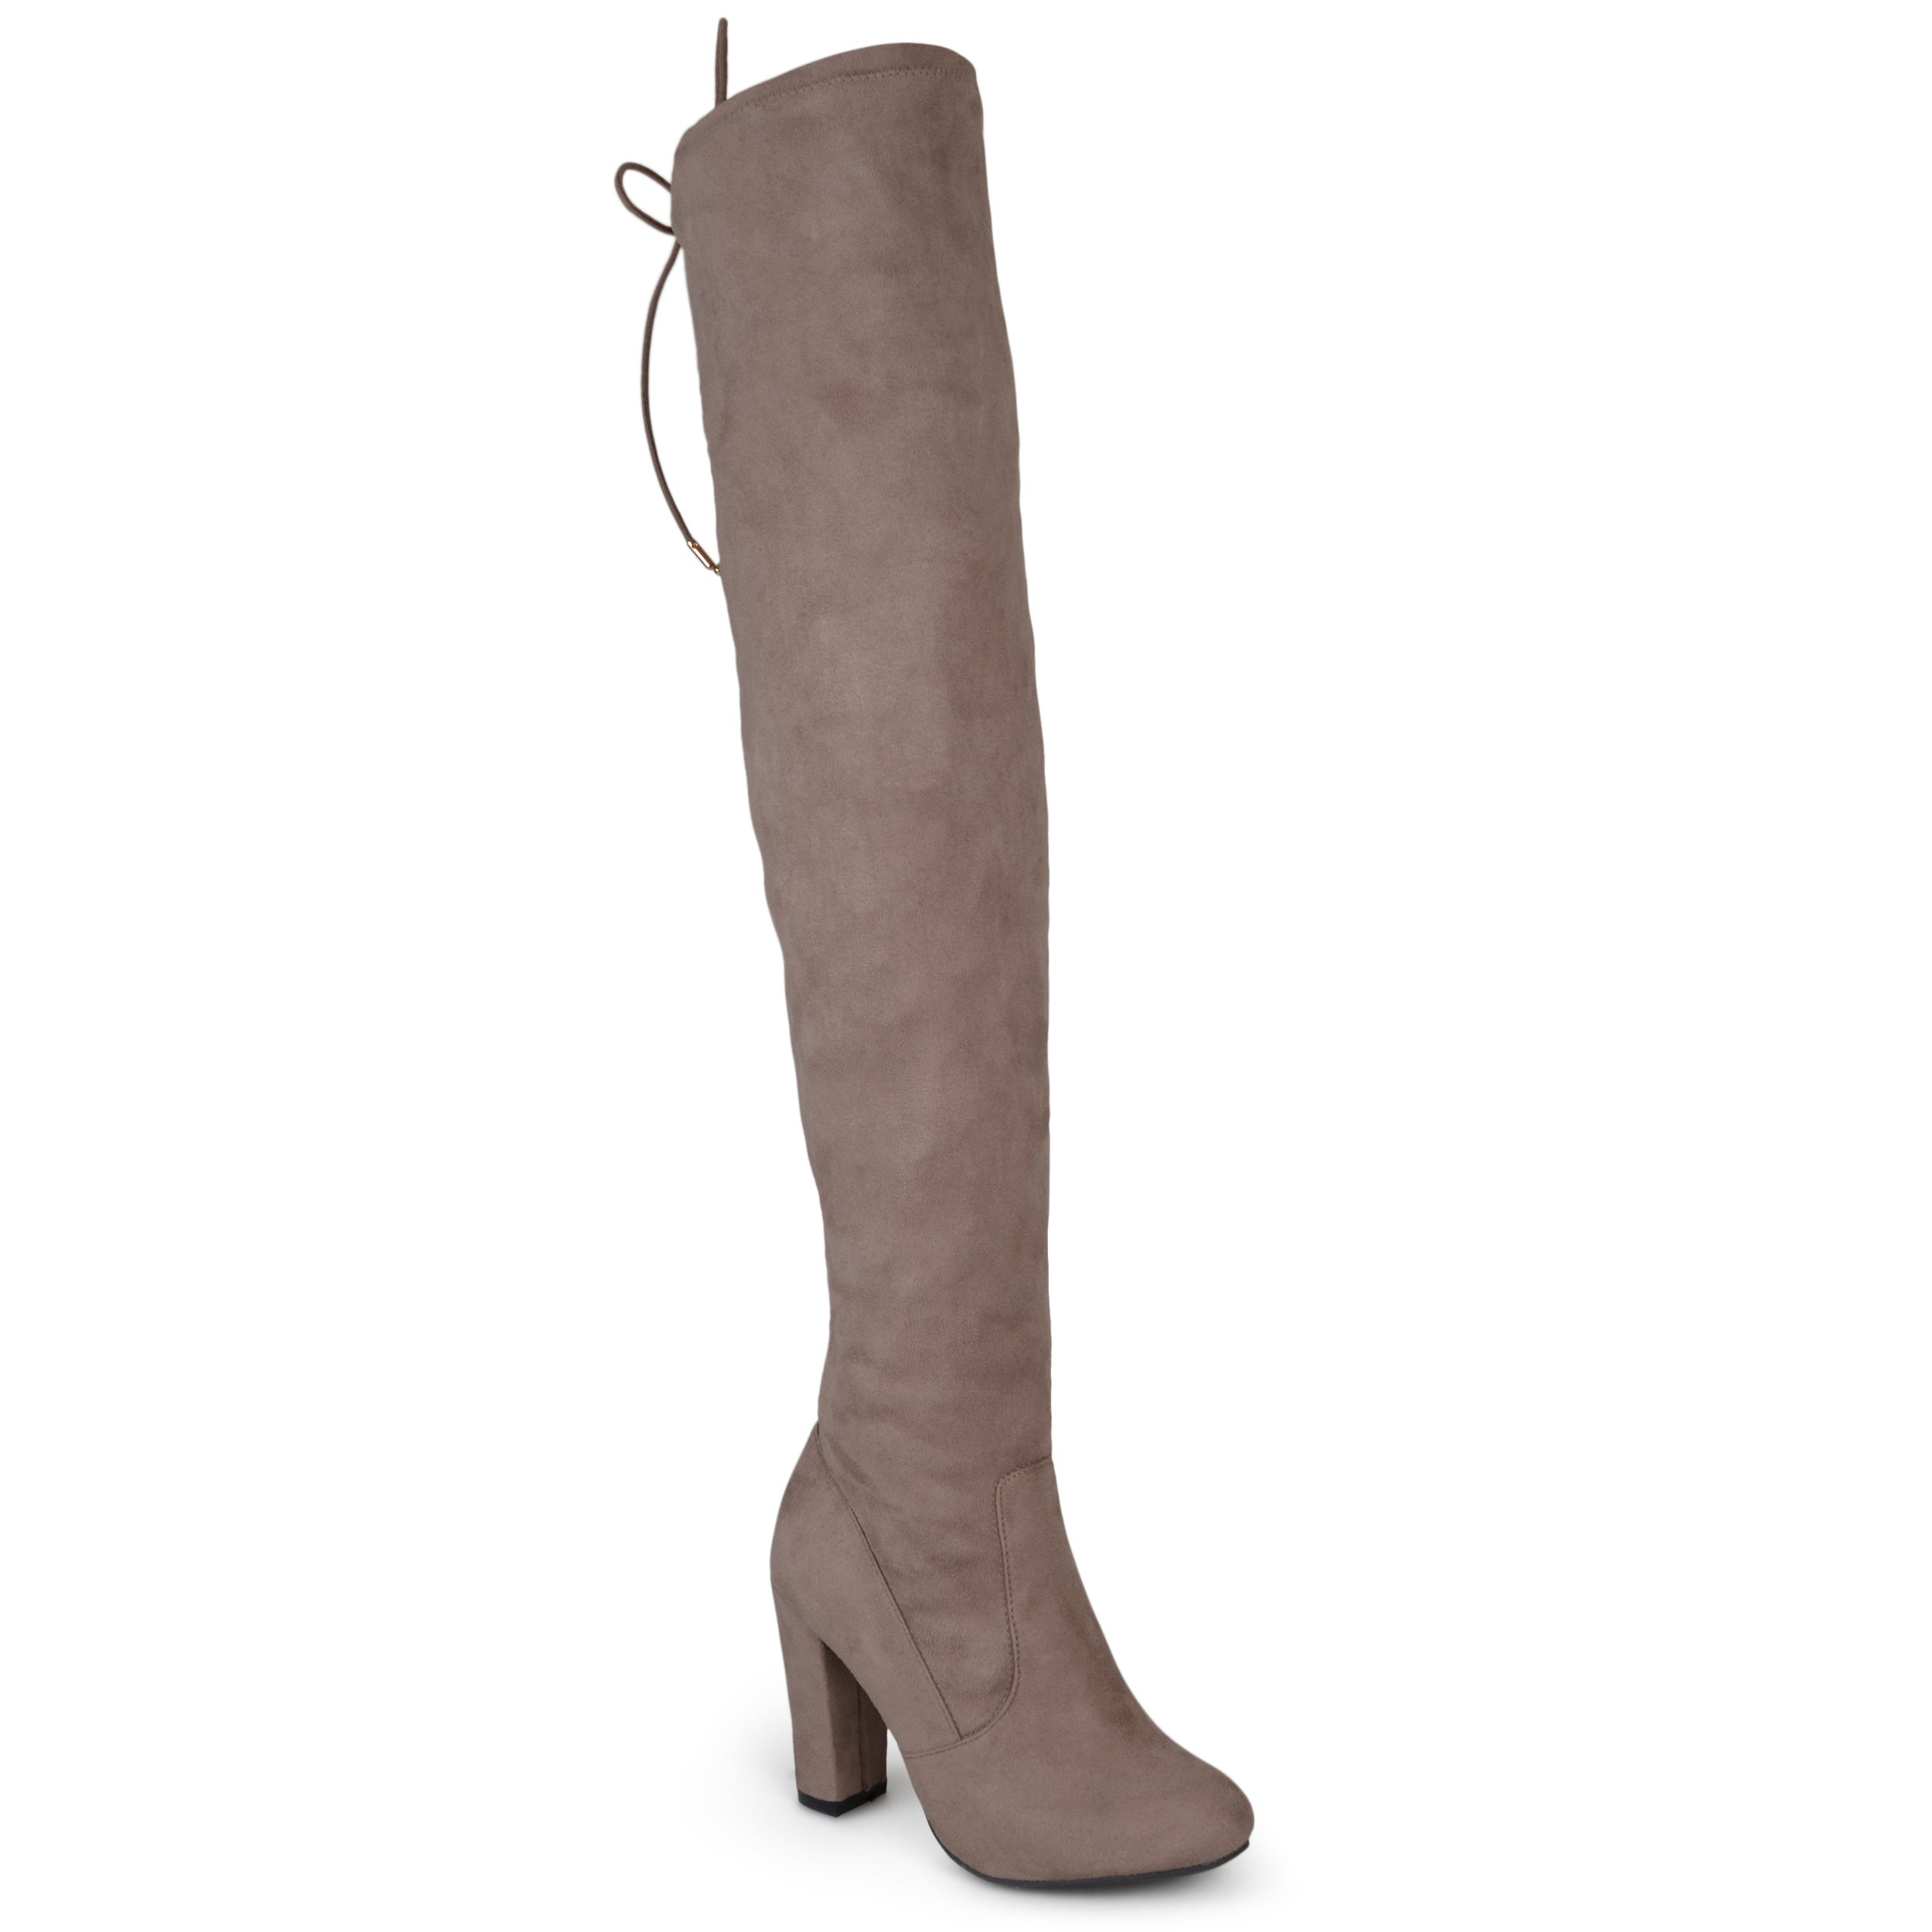 bdbd9cf44ef Journee Collection Women's 'Maya' Faux Suede Regular and Wide Calf  Over-the-knee Boots